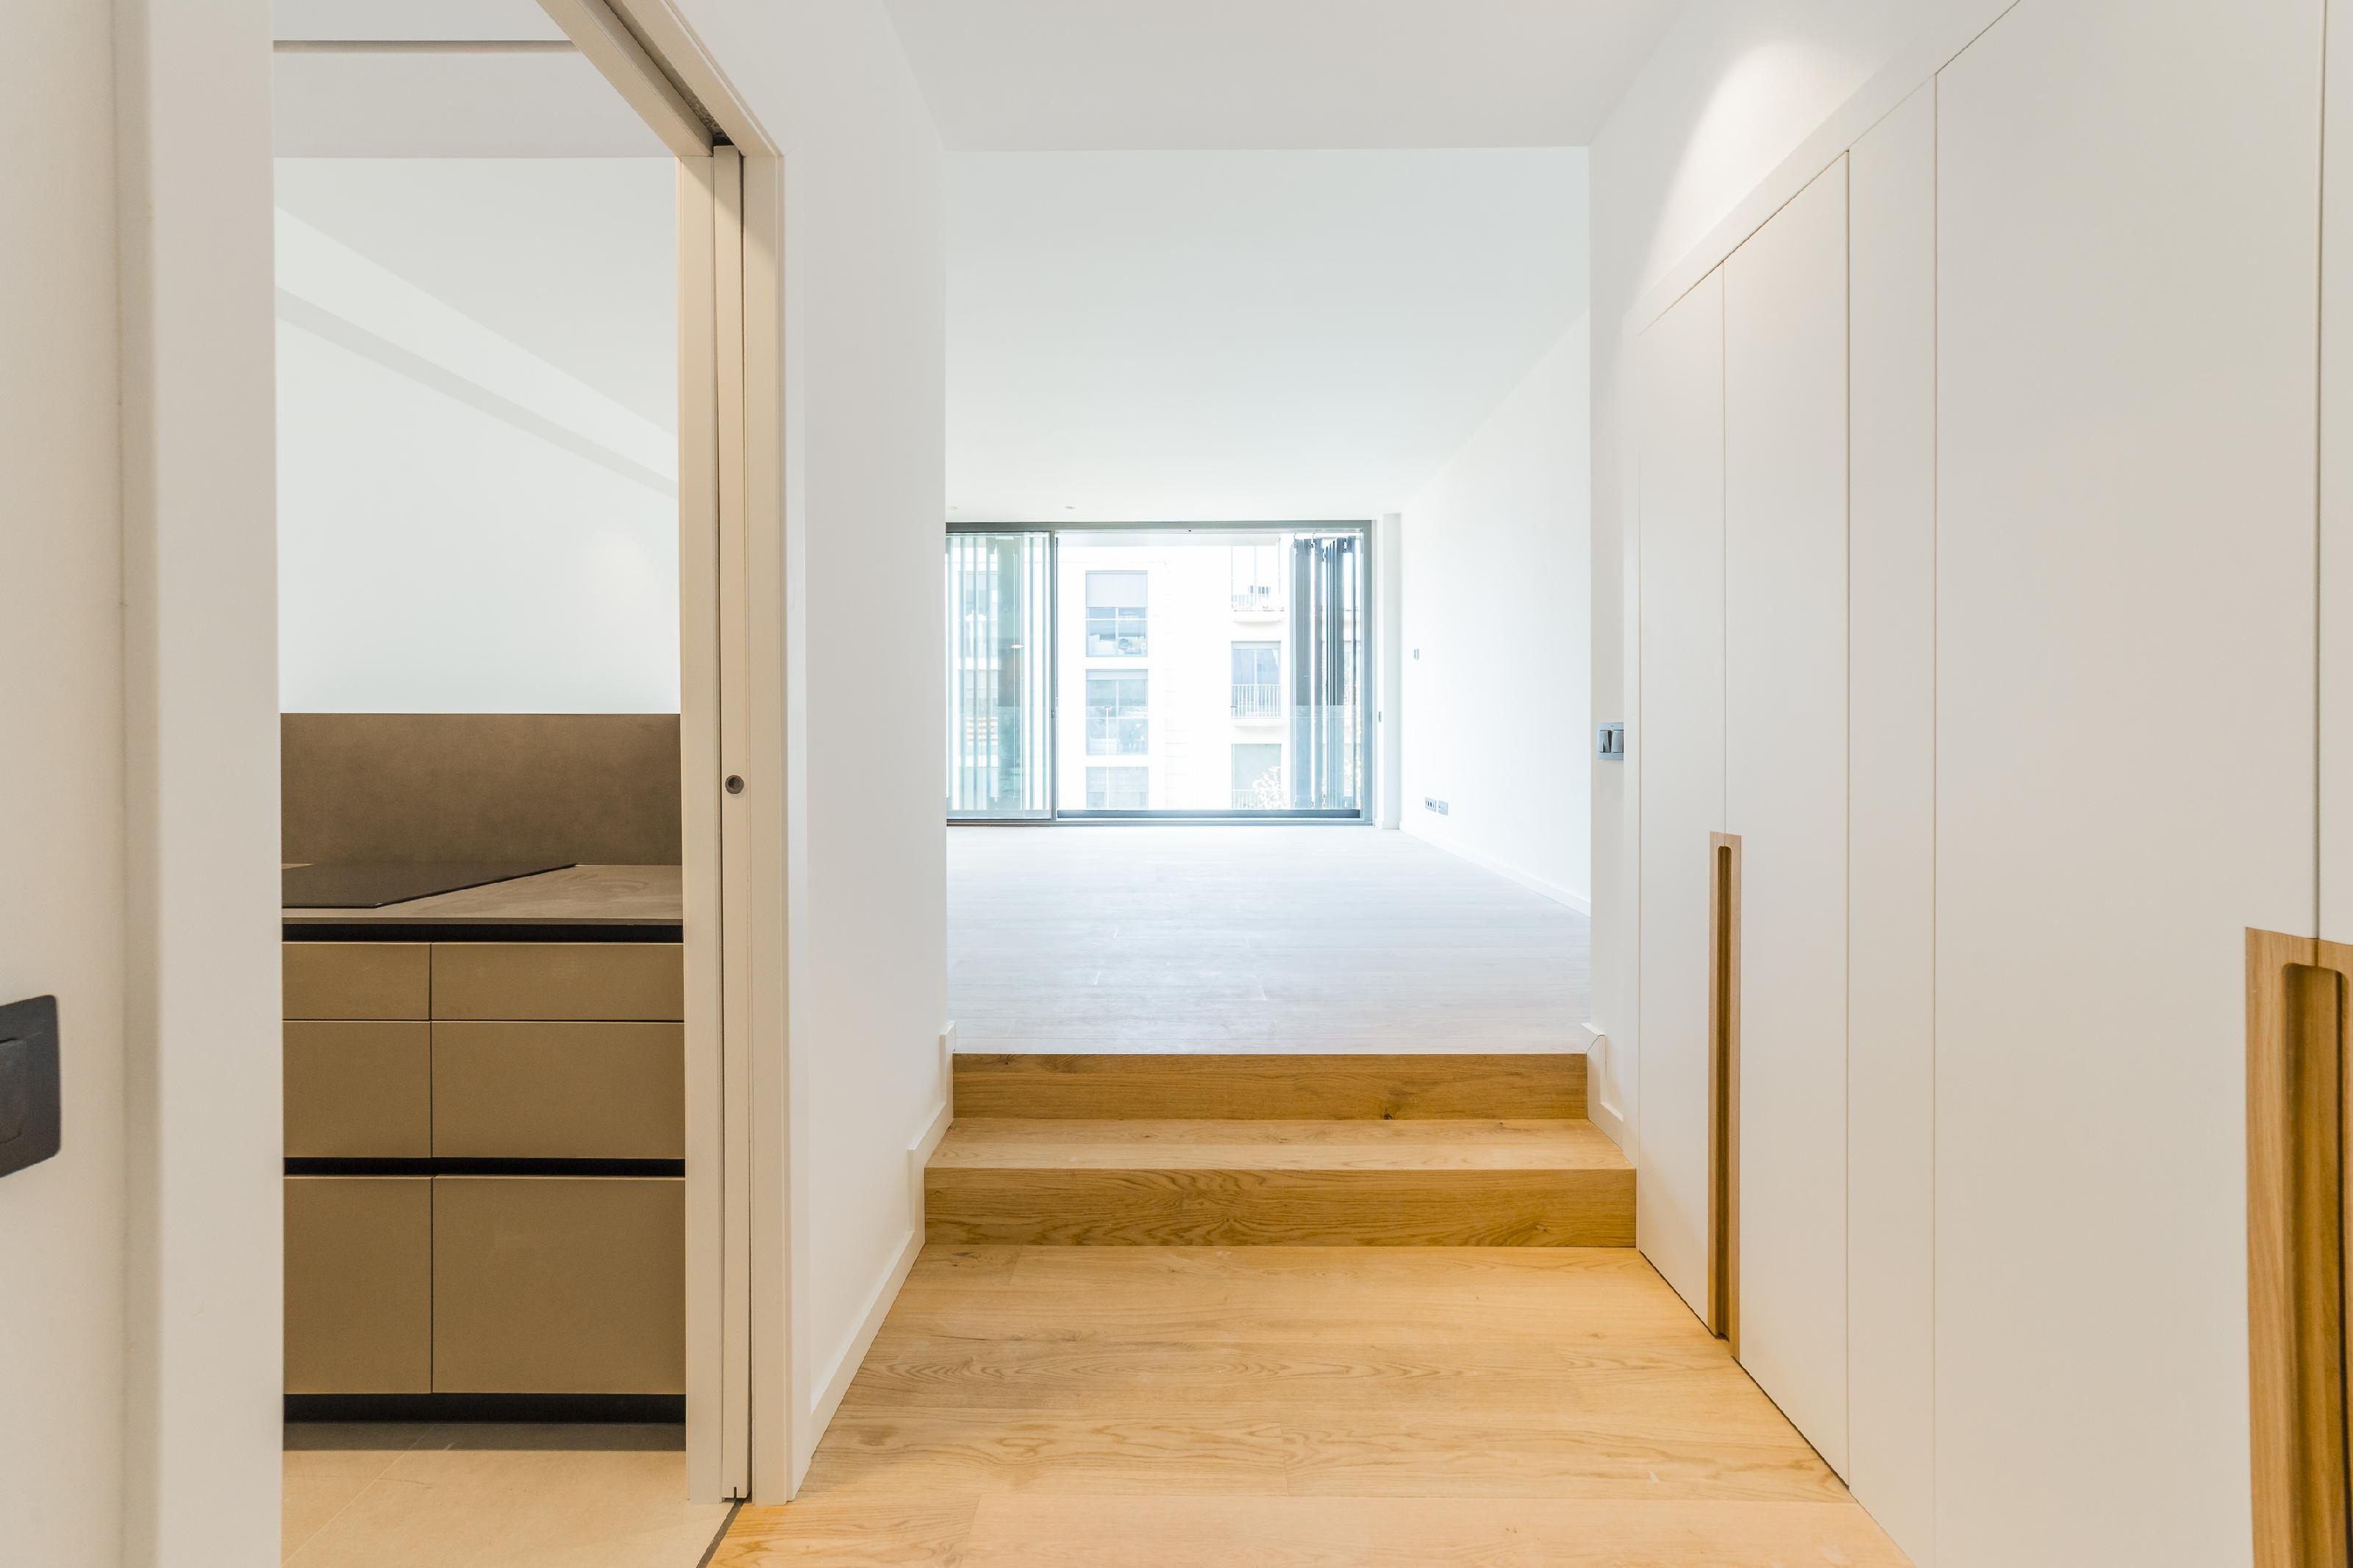 182474 Apartment for sale in Eixample, Old Left Eixample 7